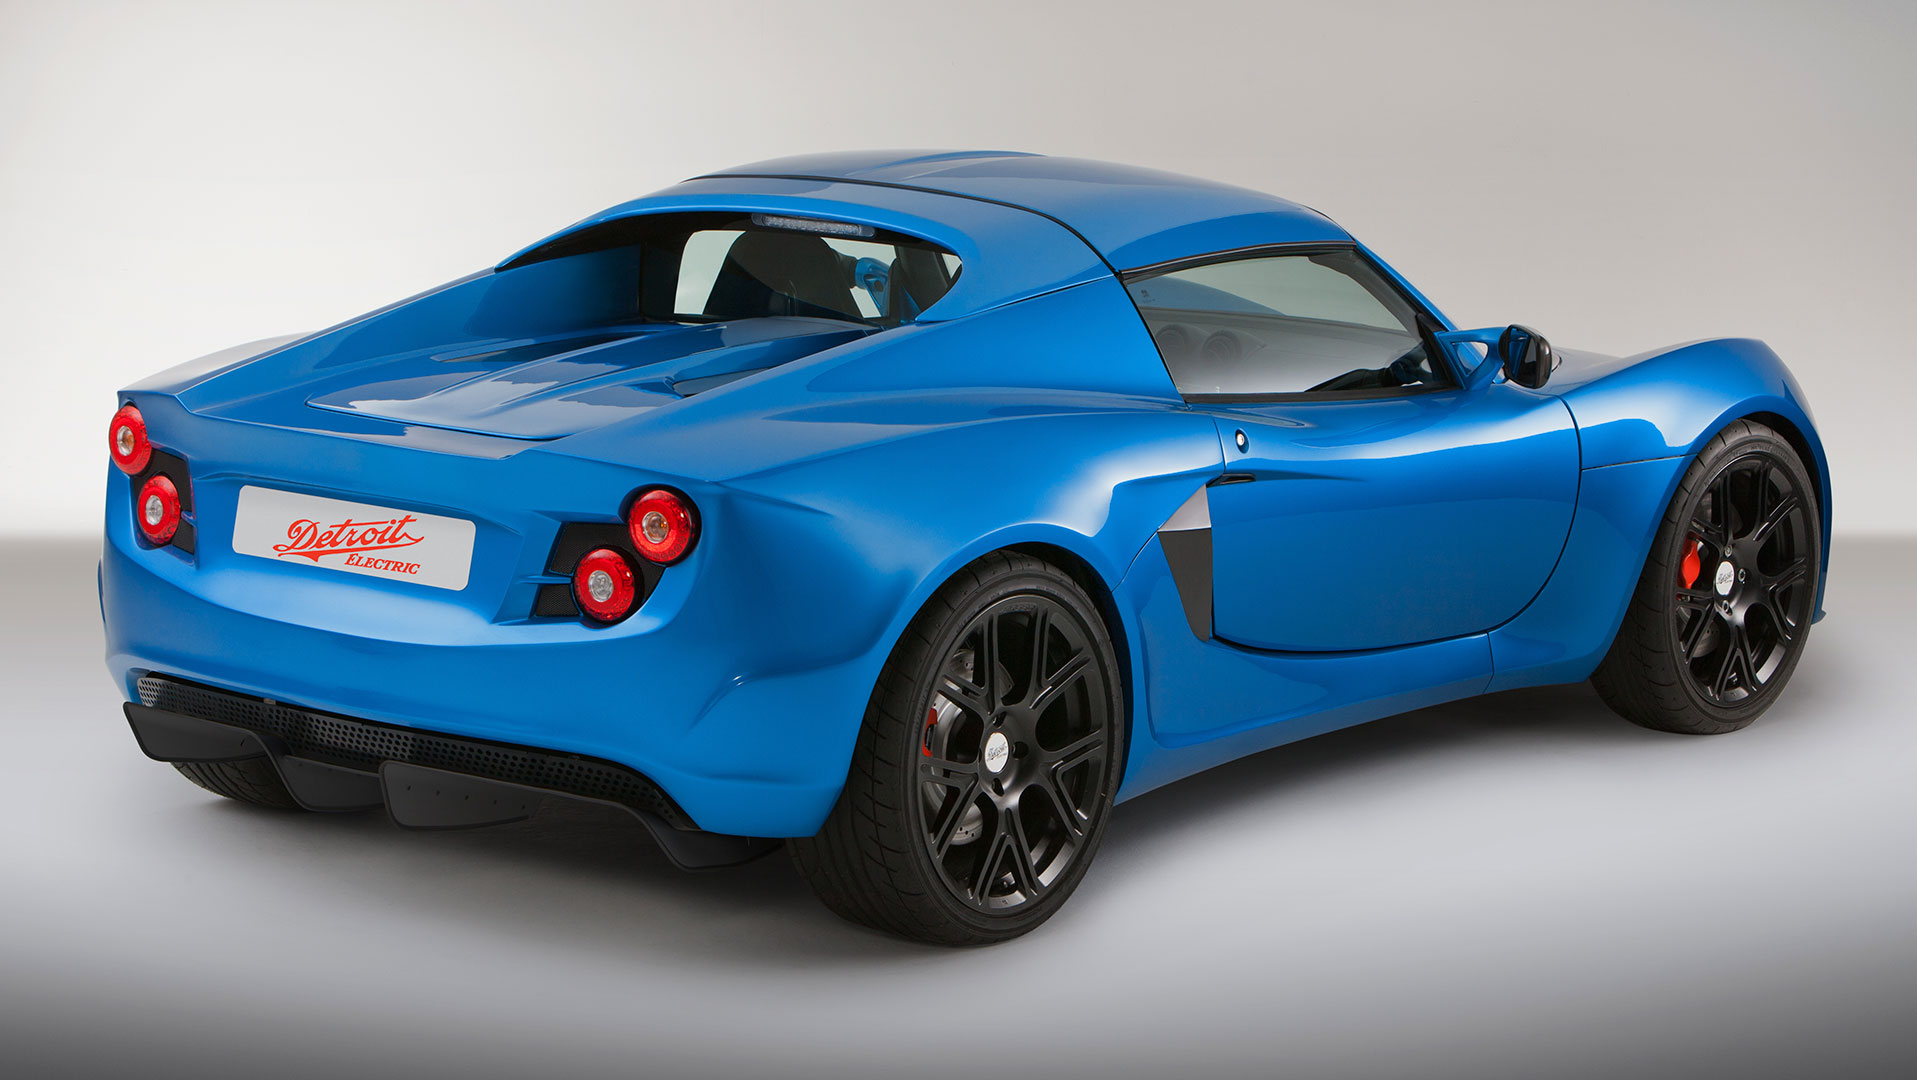 Gear Detroit Electric Sp 01 Is The Rebirth Of A Century Old Brand